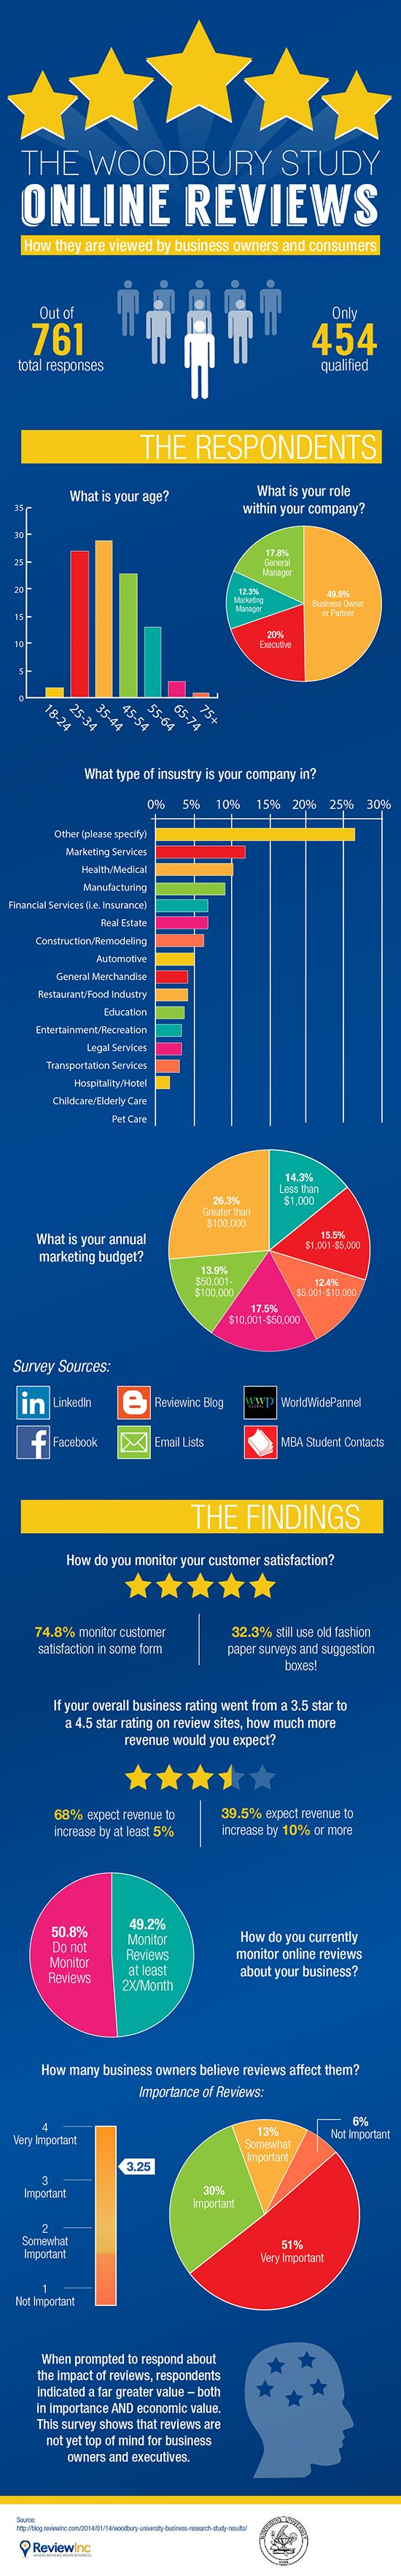 INFOGRAPHIC: Woodbury University Study on Online Reviews